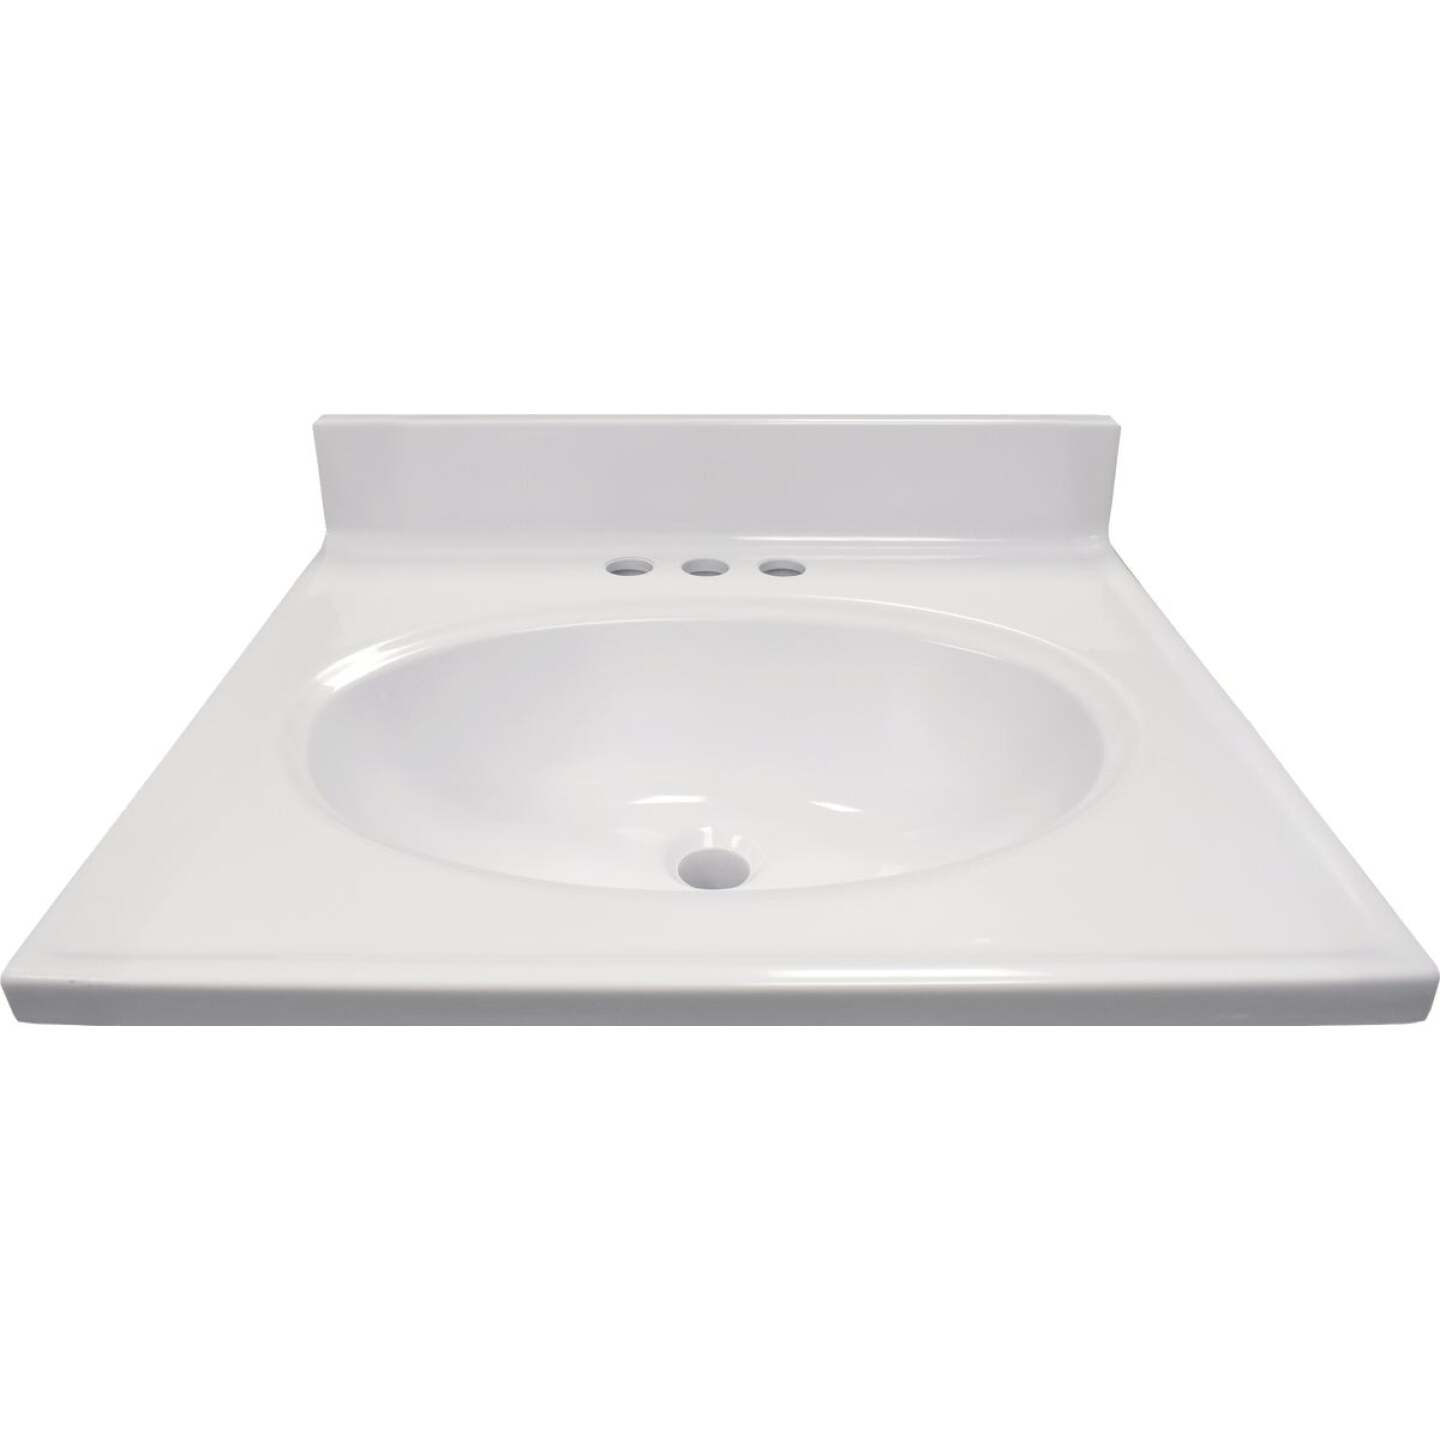 Modular Vanity Tops 19 In. W x 17 In. D Solid White Cultured Marble Vanity Top with Oval Bowl Image 2